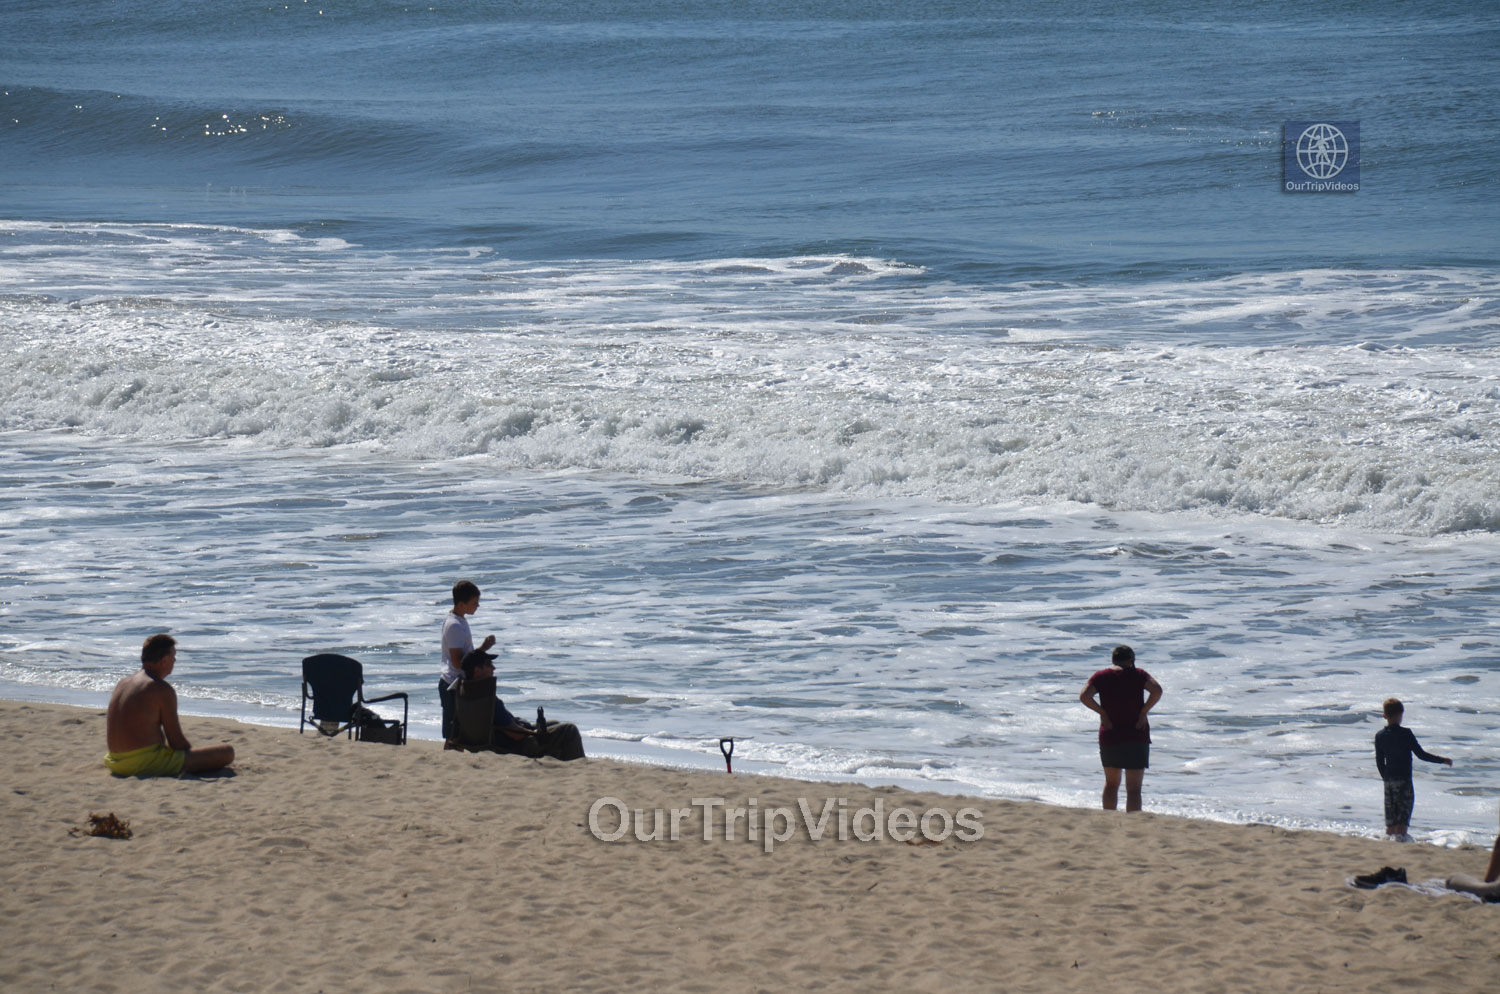 State Beach(Francis Beach), Half Moon Bay, CA, USA - Picture 21 of 25